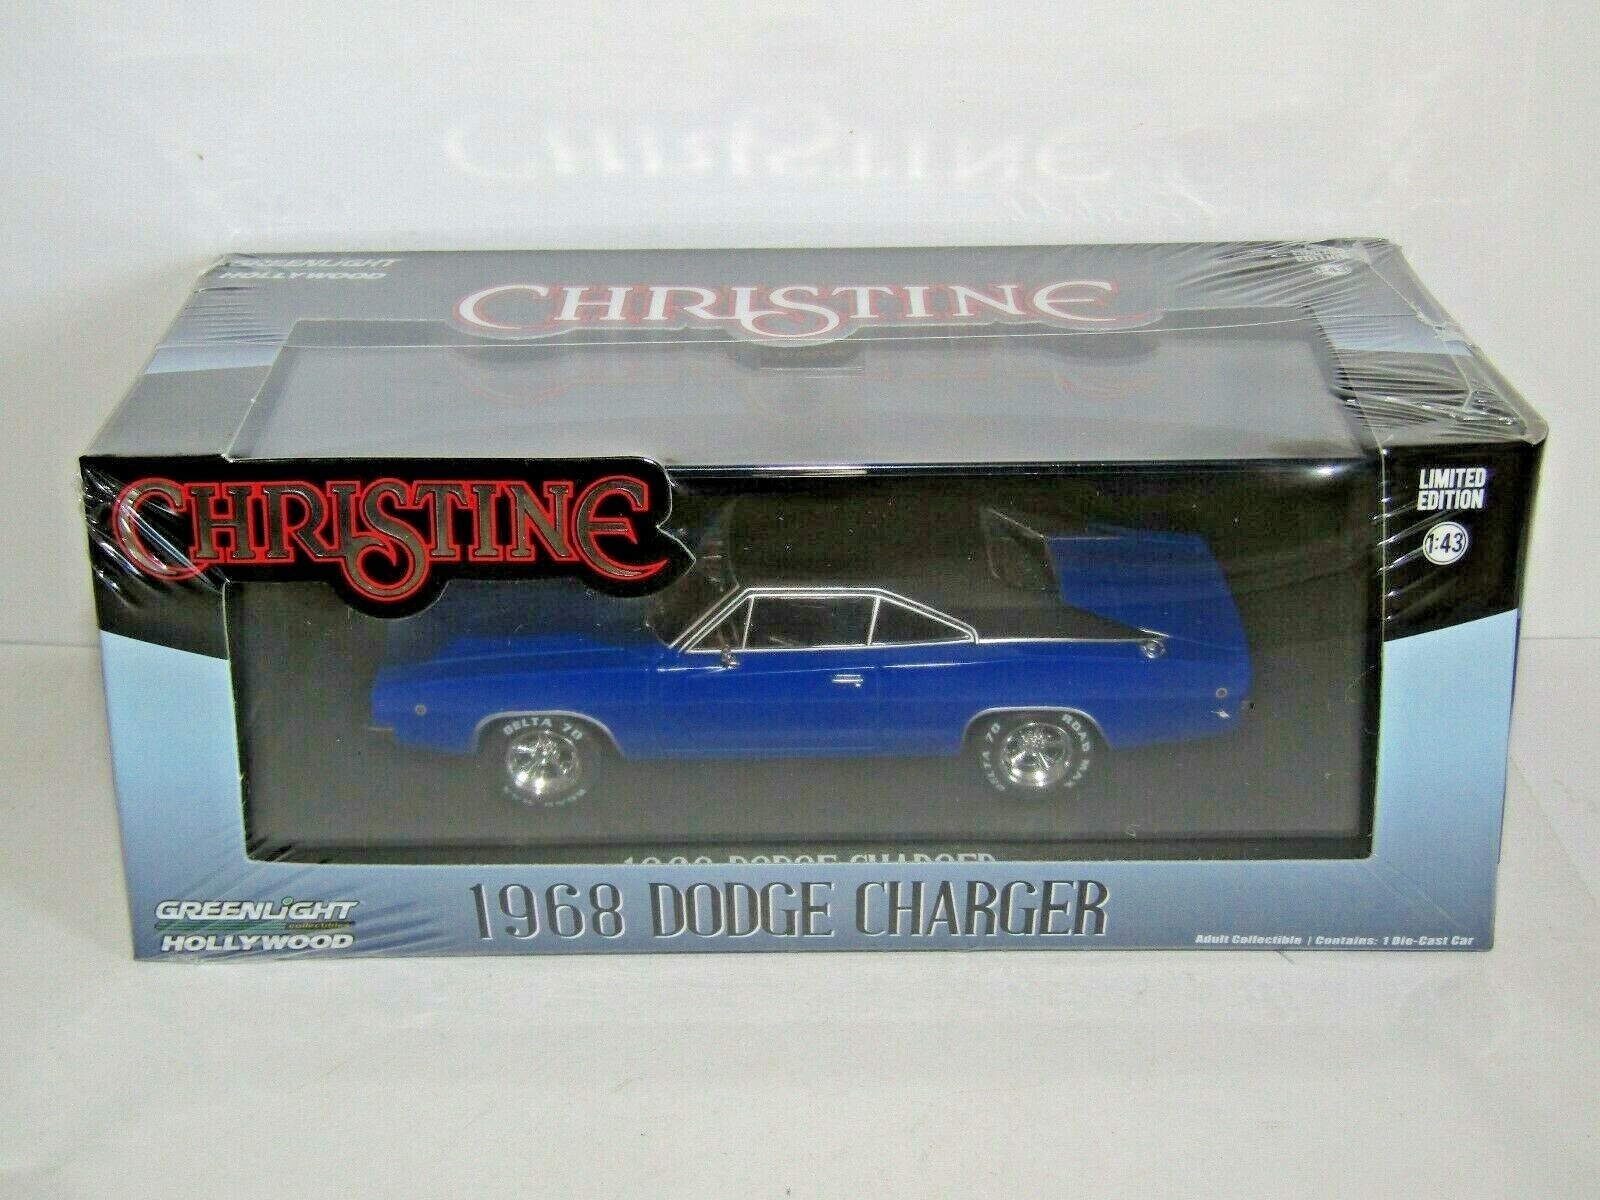 GREENLIGHT 1968 DODGE CHARGER blueE CHRISTINE 1 43 86531